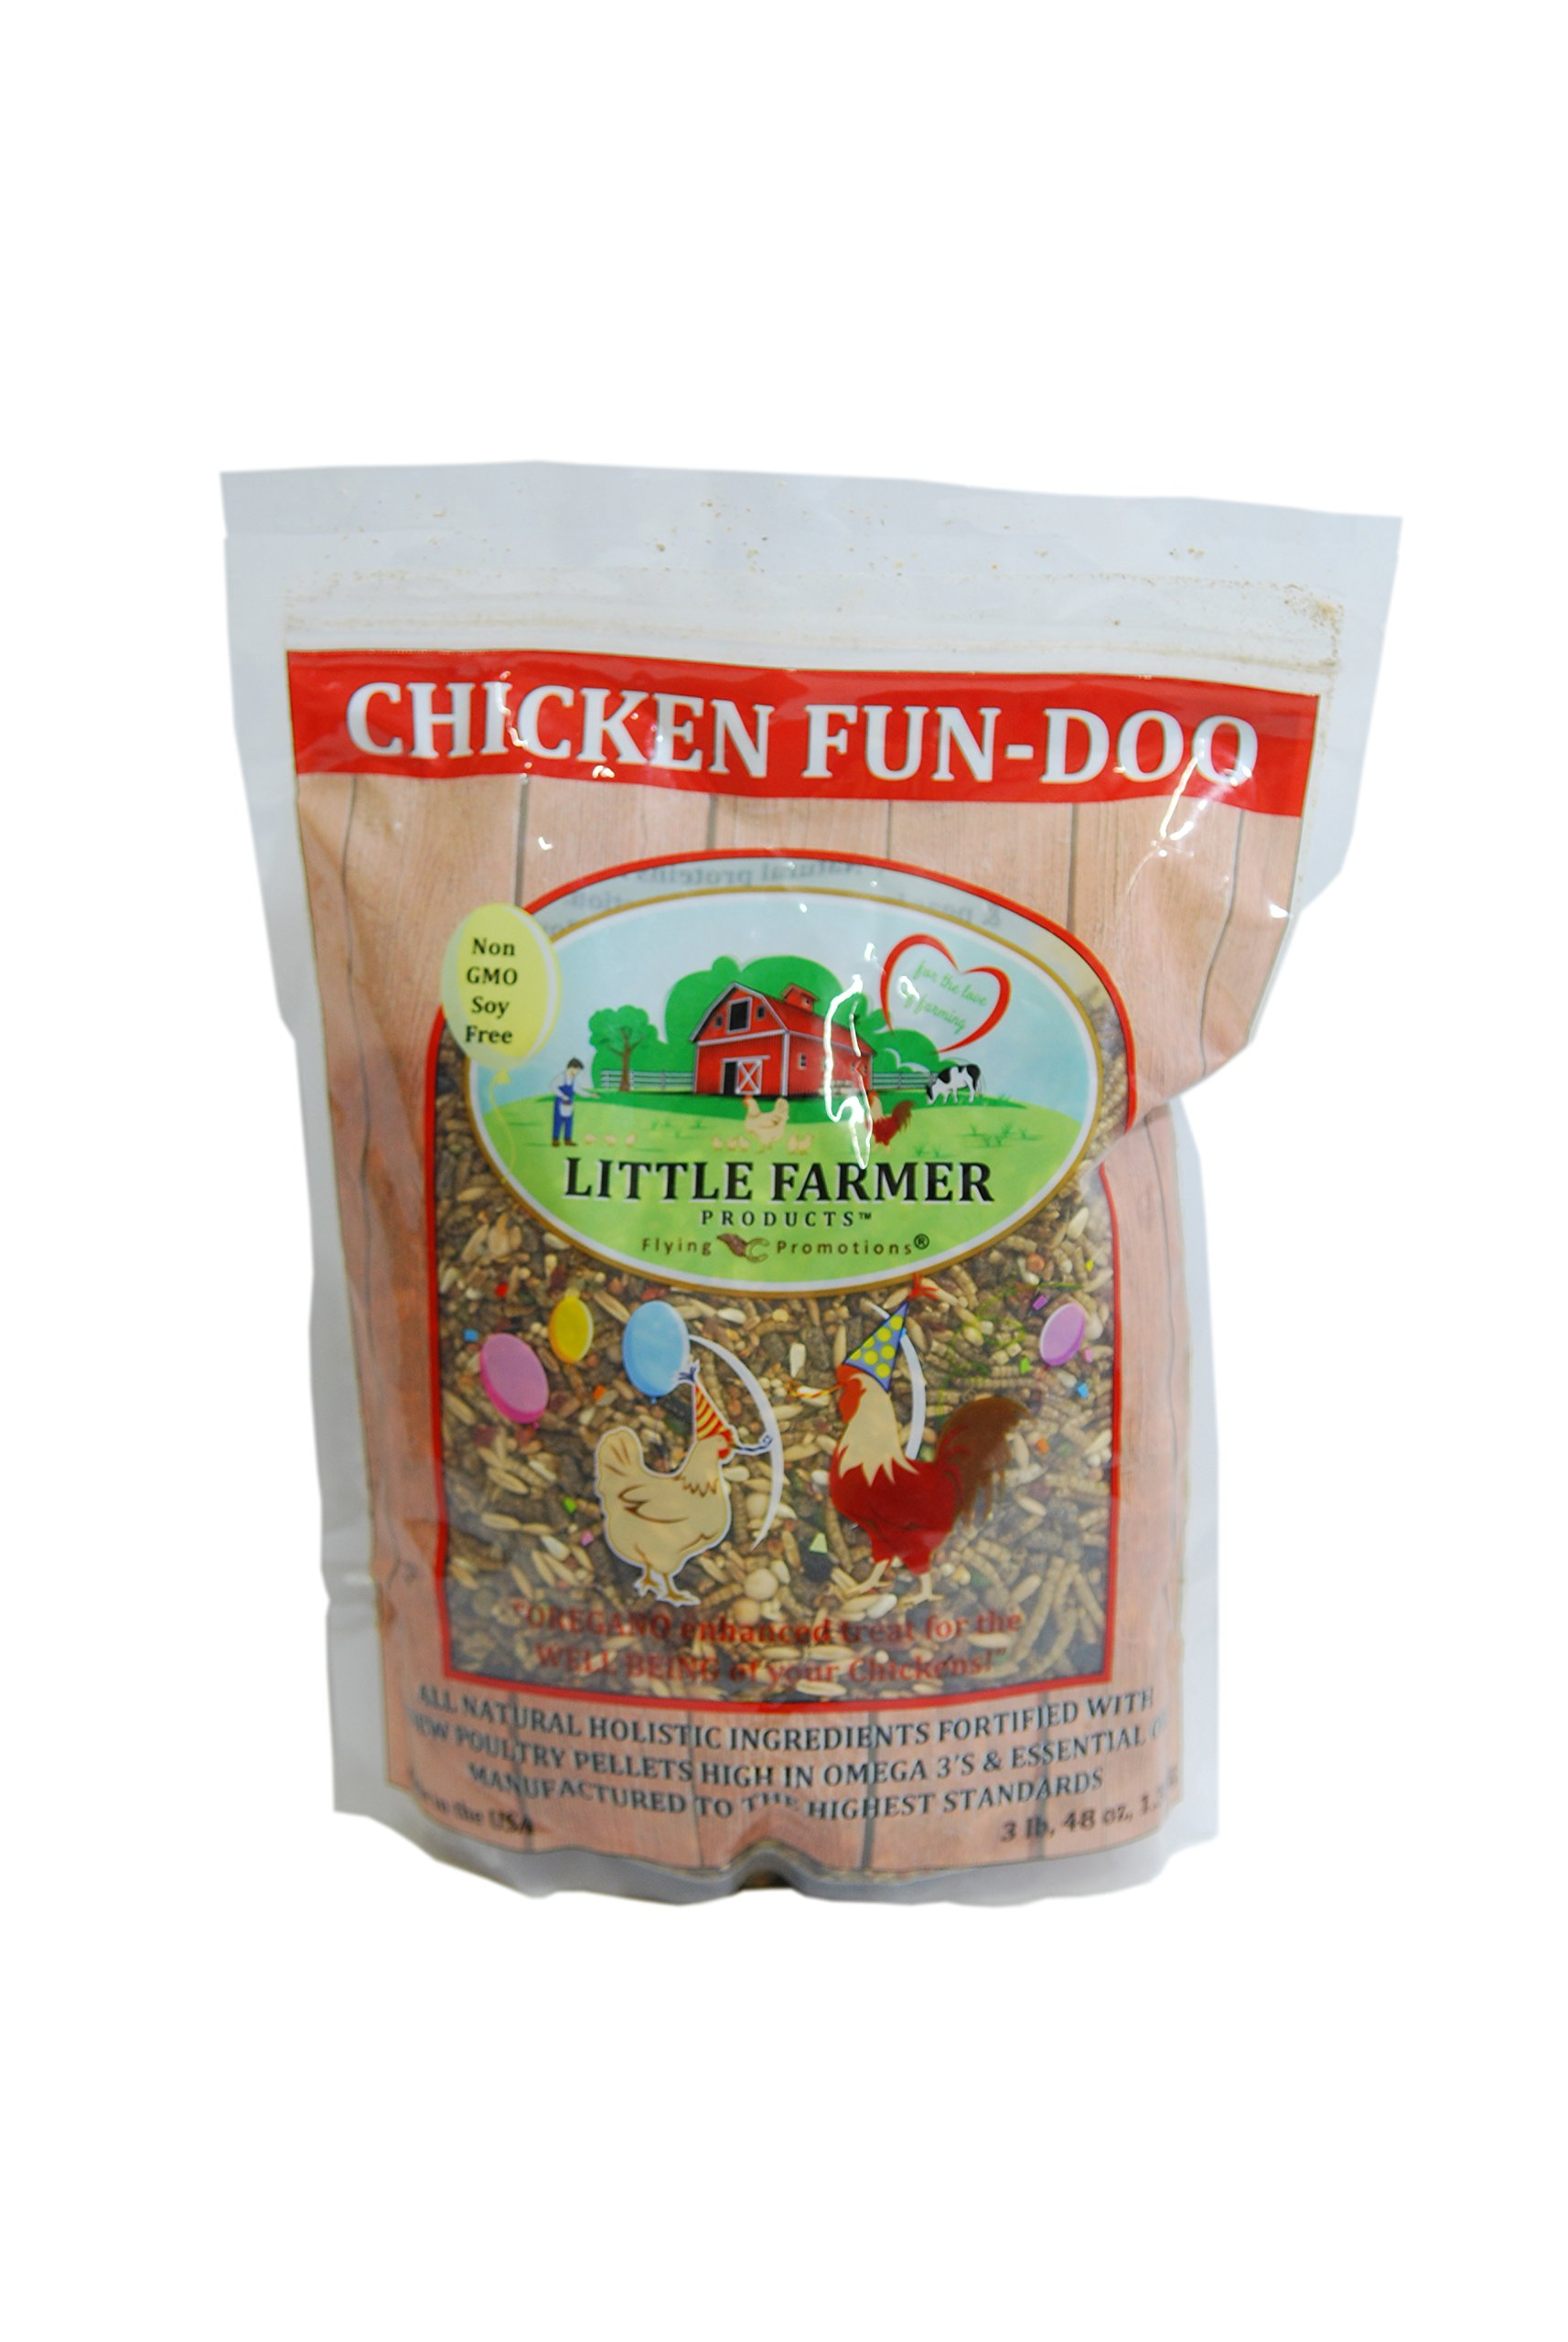 LITTLE FARMER PRODUCTS Chicken FUN-DOO Non-GMO, Soy-free Chicken Treat | Premium Poultry Meal Worm, Vegetable & Herb Mix (3 lbs) by LITTLE FARMER PRODUCTS